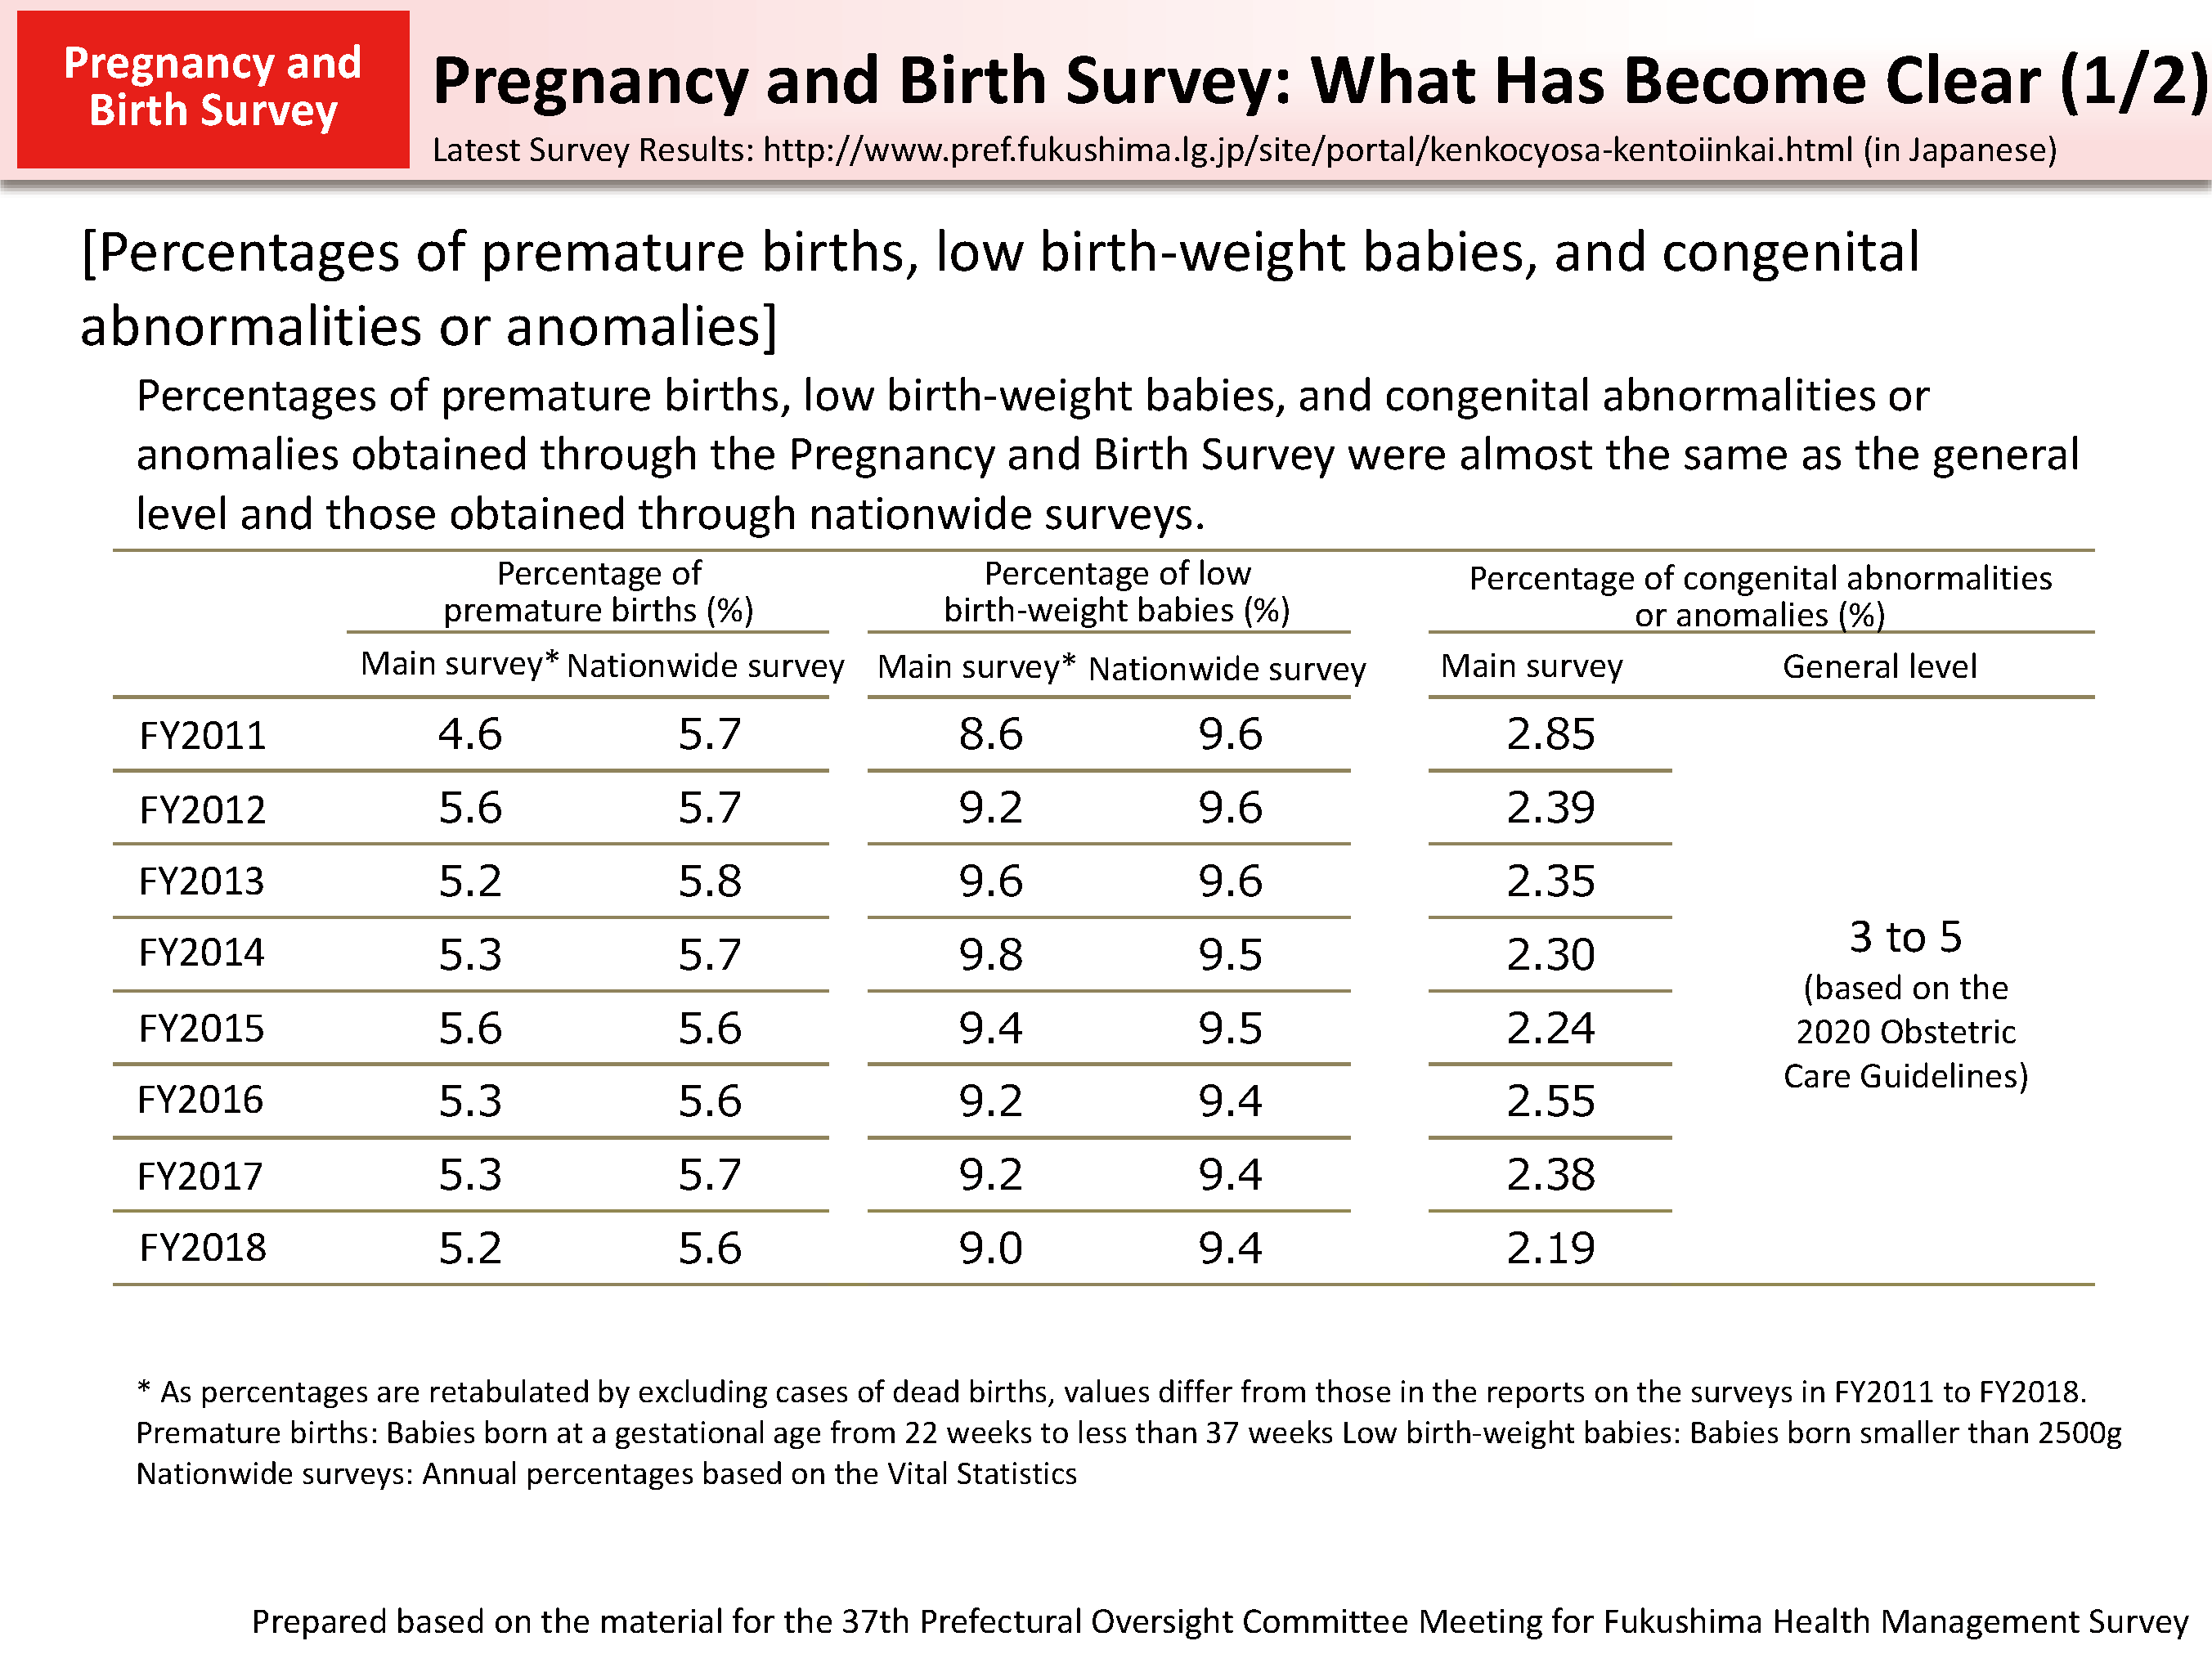 Pregnancy and Birth Survey: What Has Become Clear (1/2)_Figure